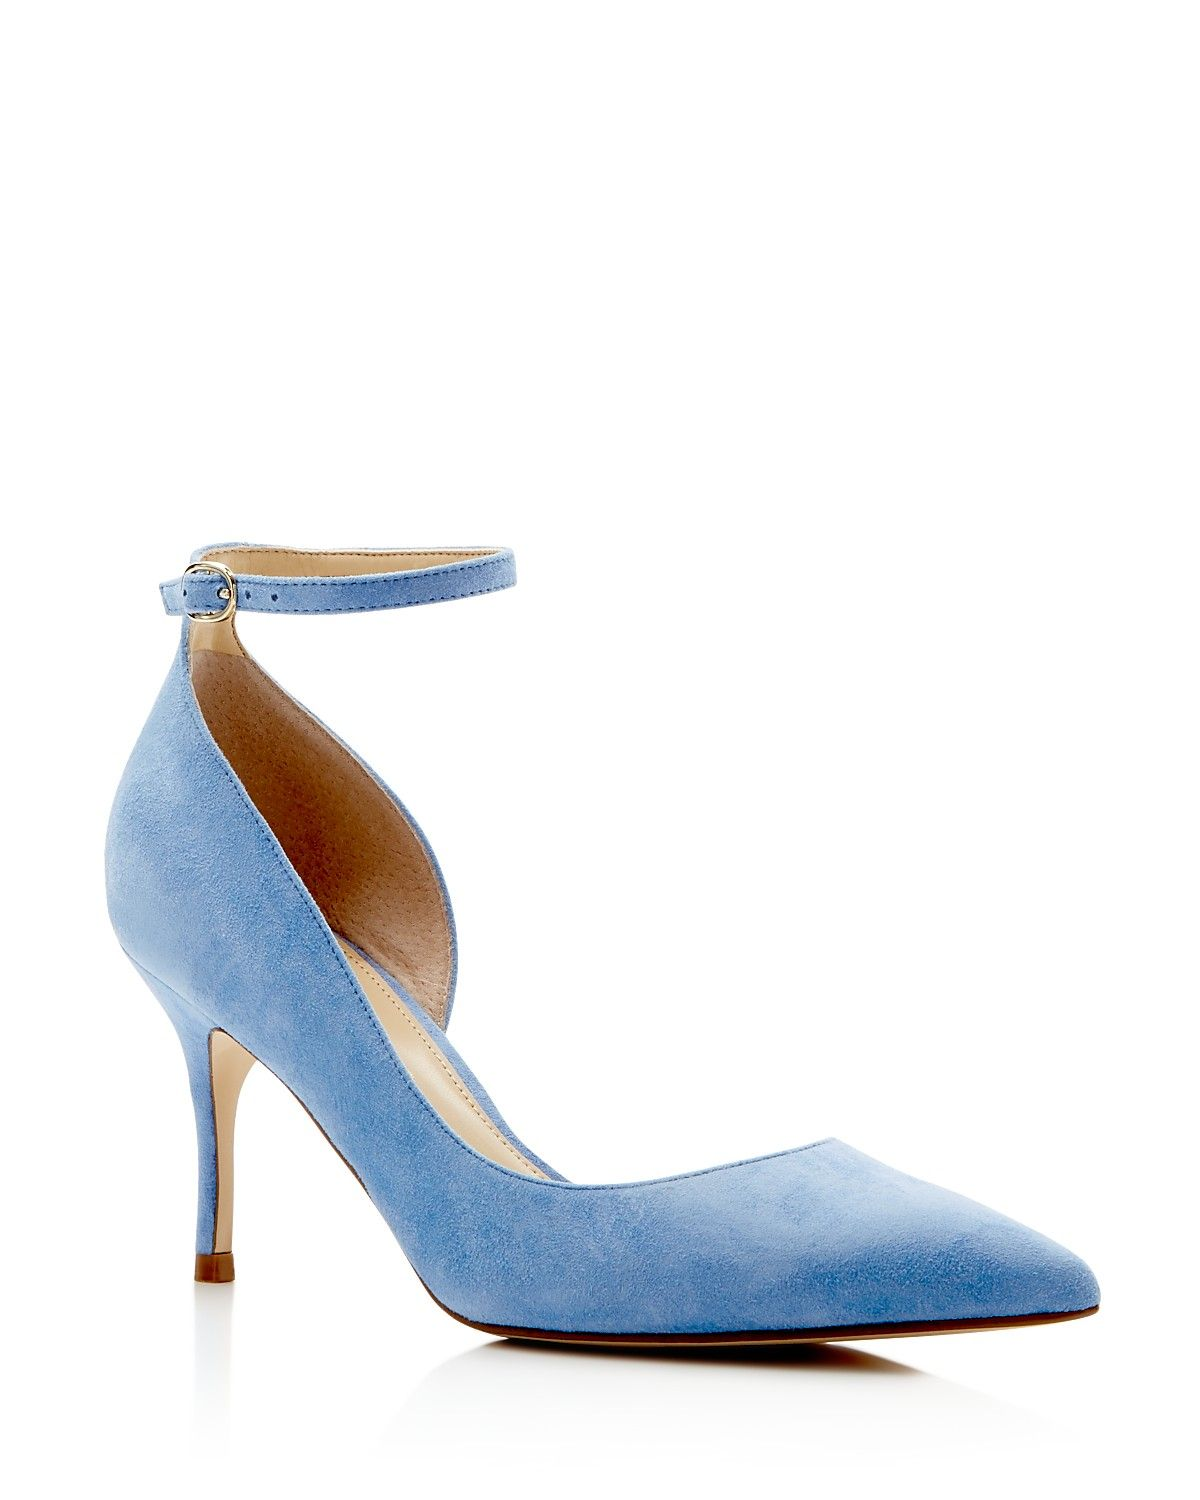 81414d9272c IVANKA TRUMP Brita Suede Pointed Toe Ankle Strap Pumps